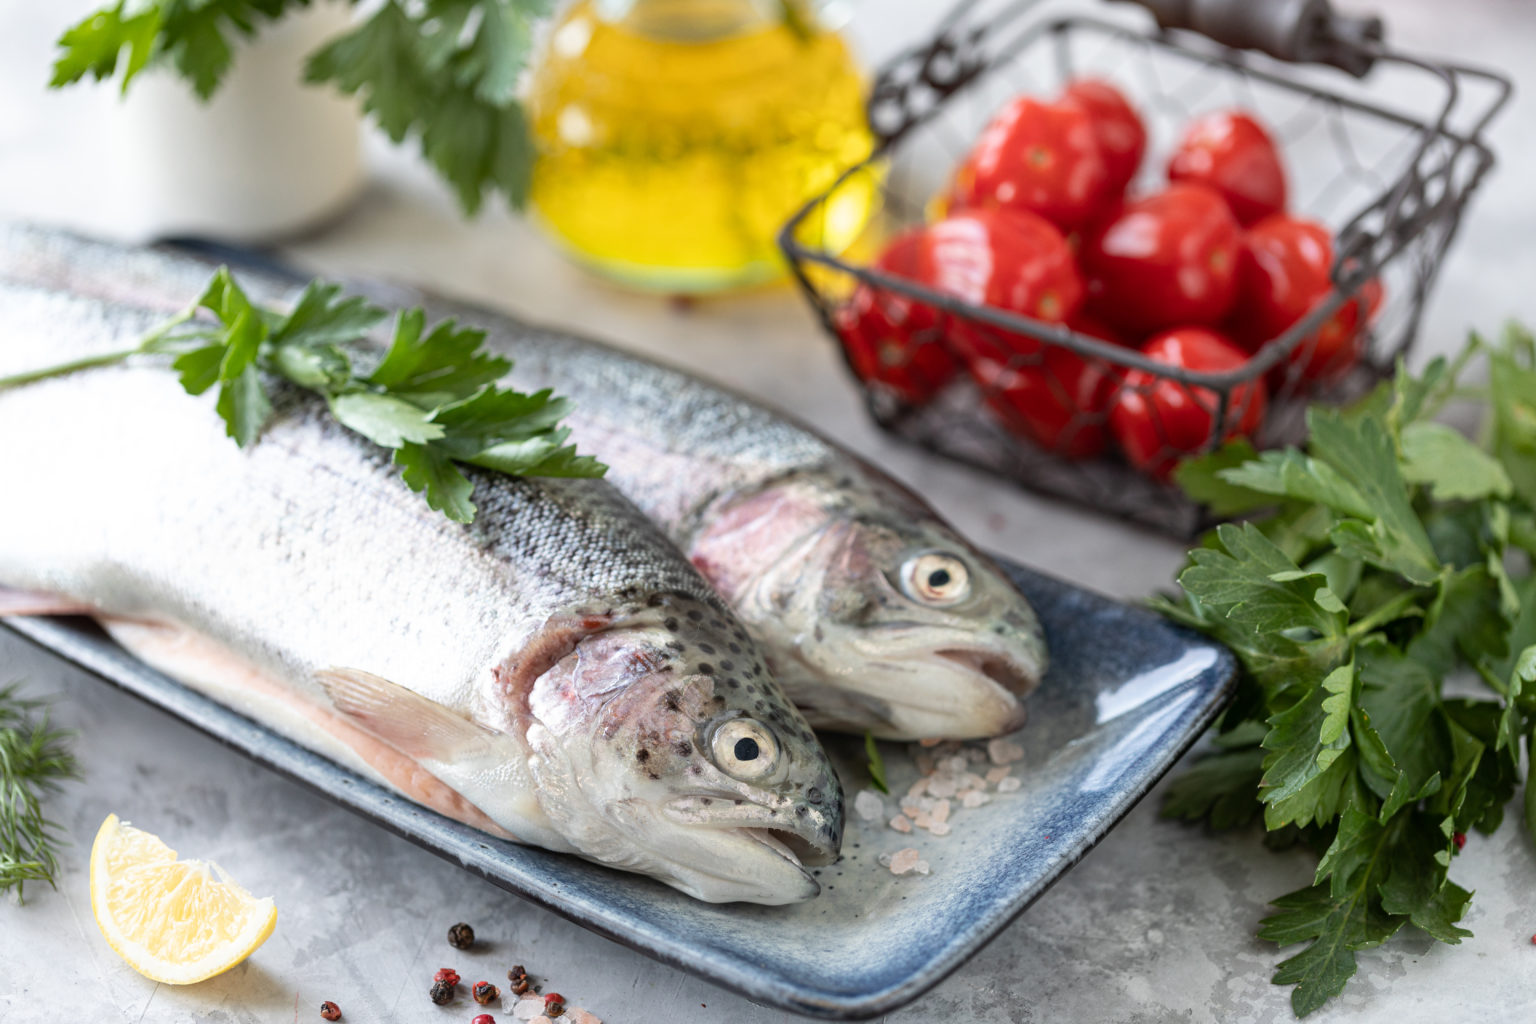 Two raw rainbow trout fish on a plate, greens and fresh vegetables for preparing healthy and tasty food. Healthy diet and delicious culinary concept. Copy space.